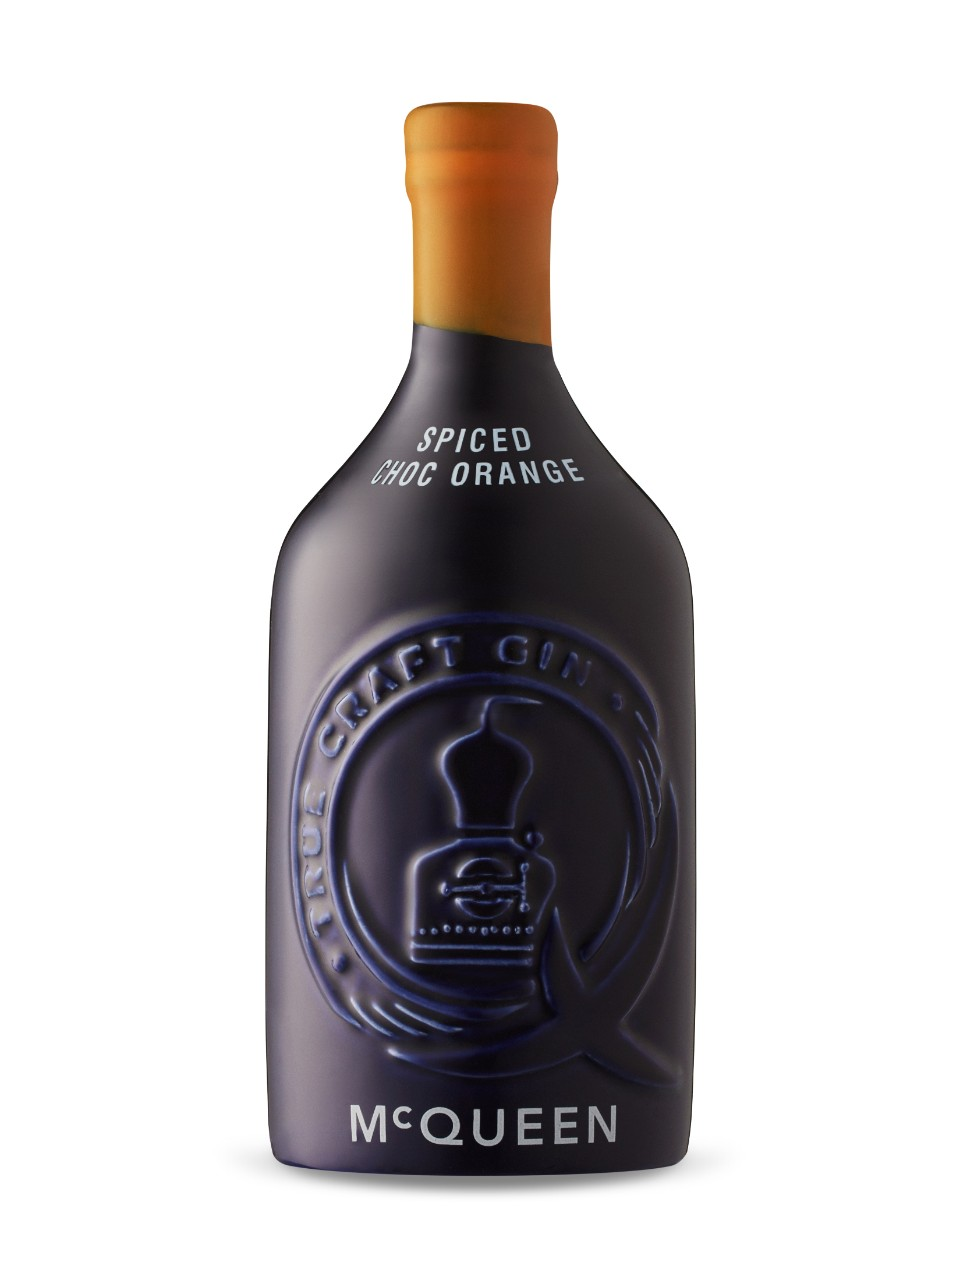 McQueen Spiced Chocolate Orange Gin